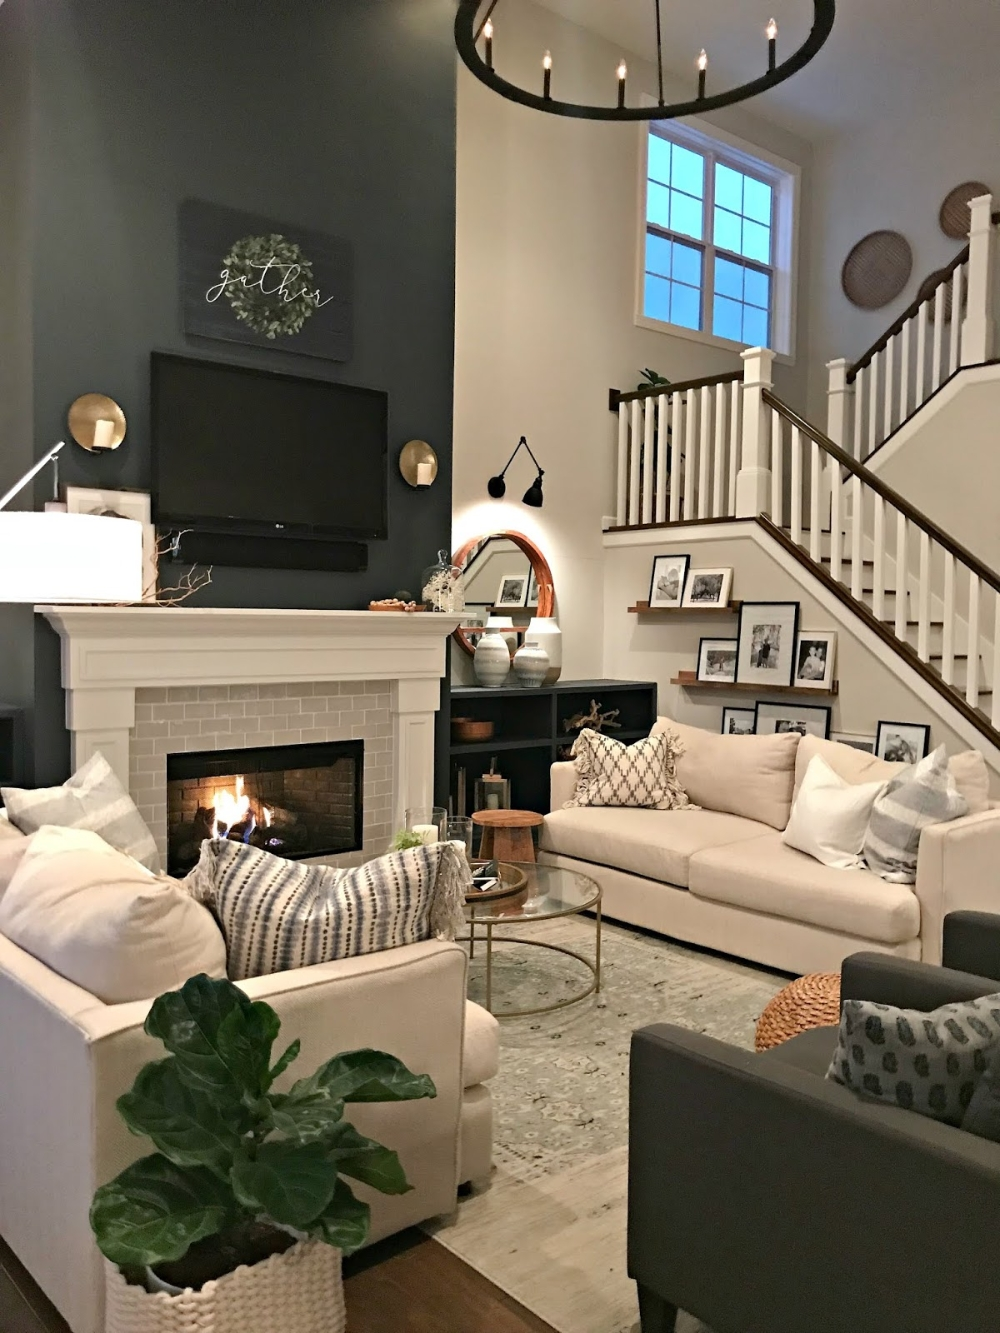 Attractive Family Room Designs Ideas That Will Inspire You 33